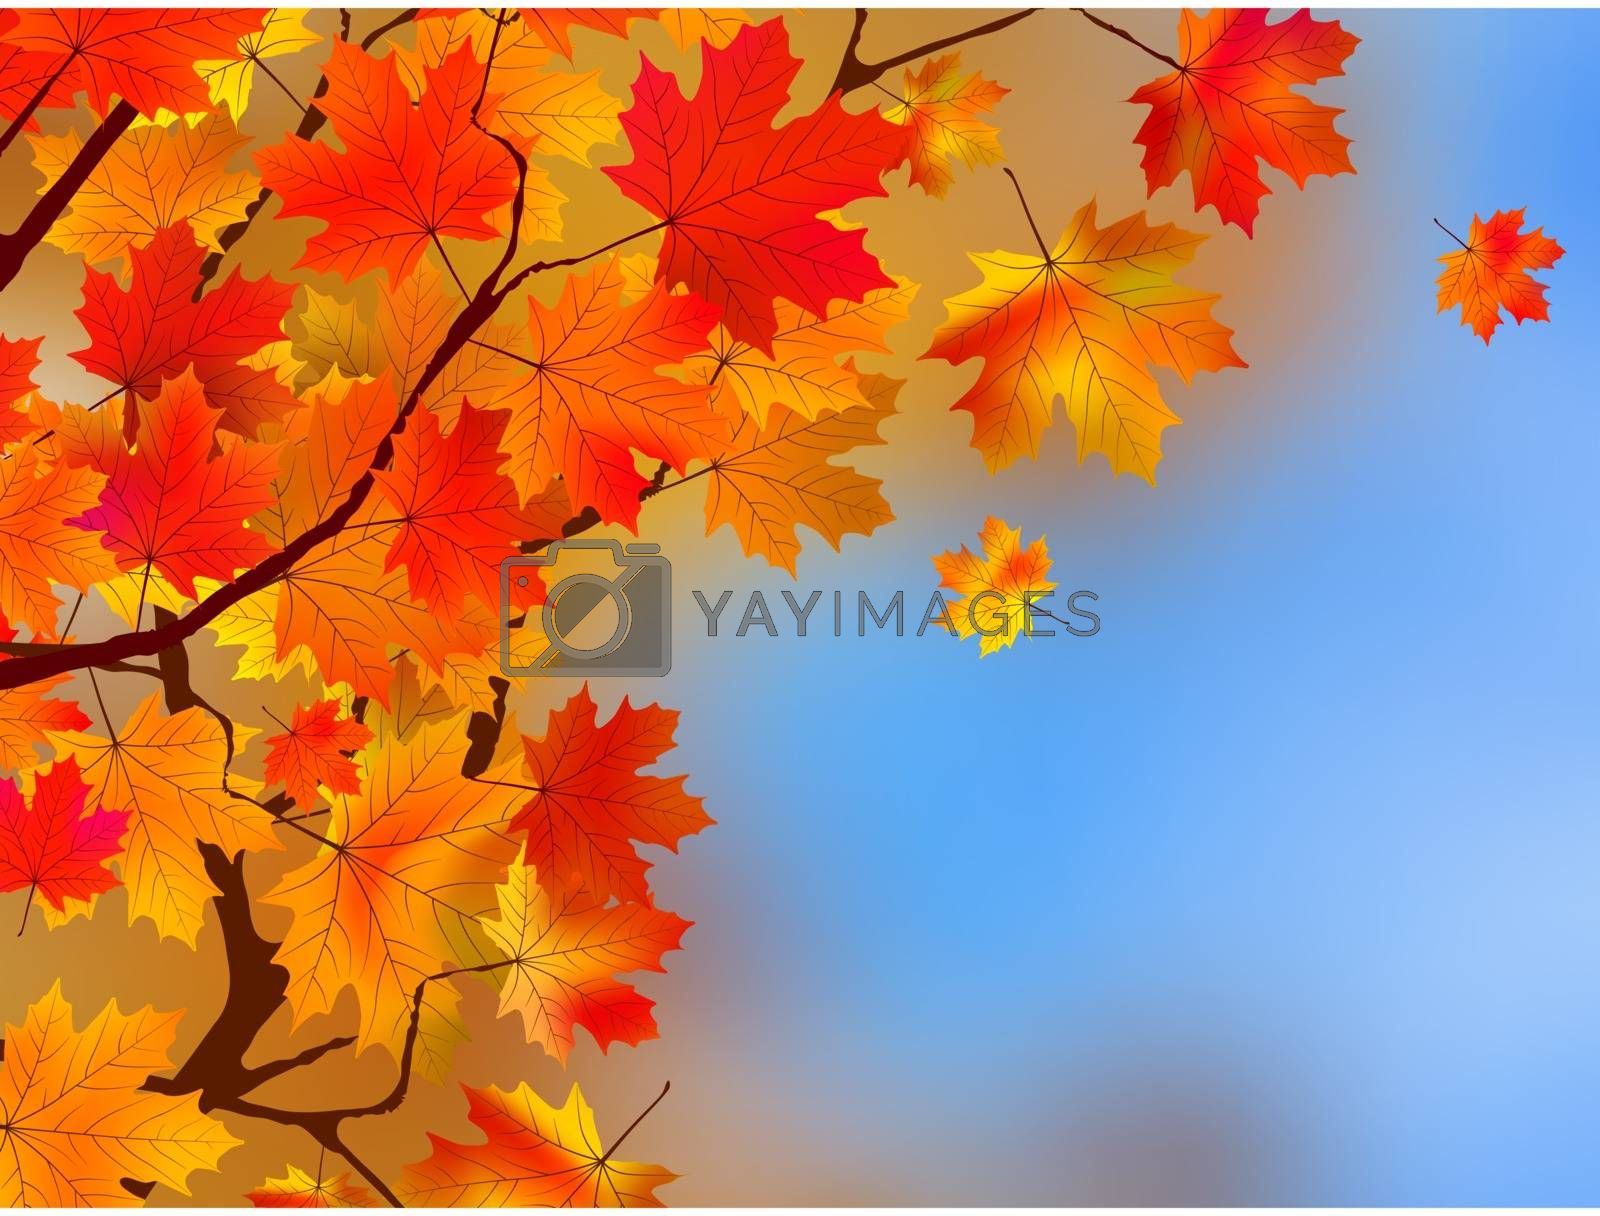 Background made of autumn leaves. EPS 8 vector file included